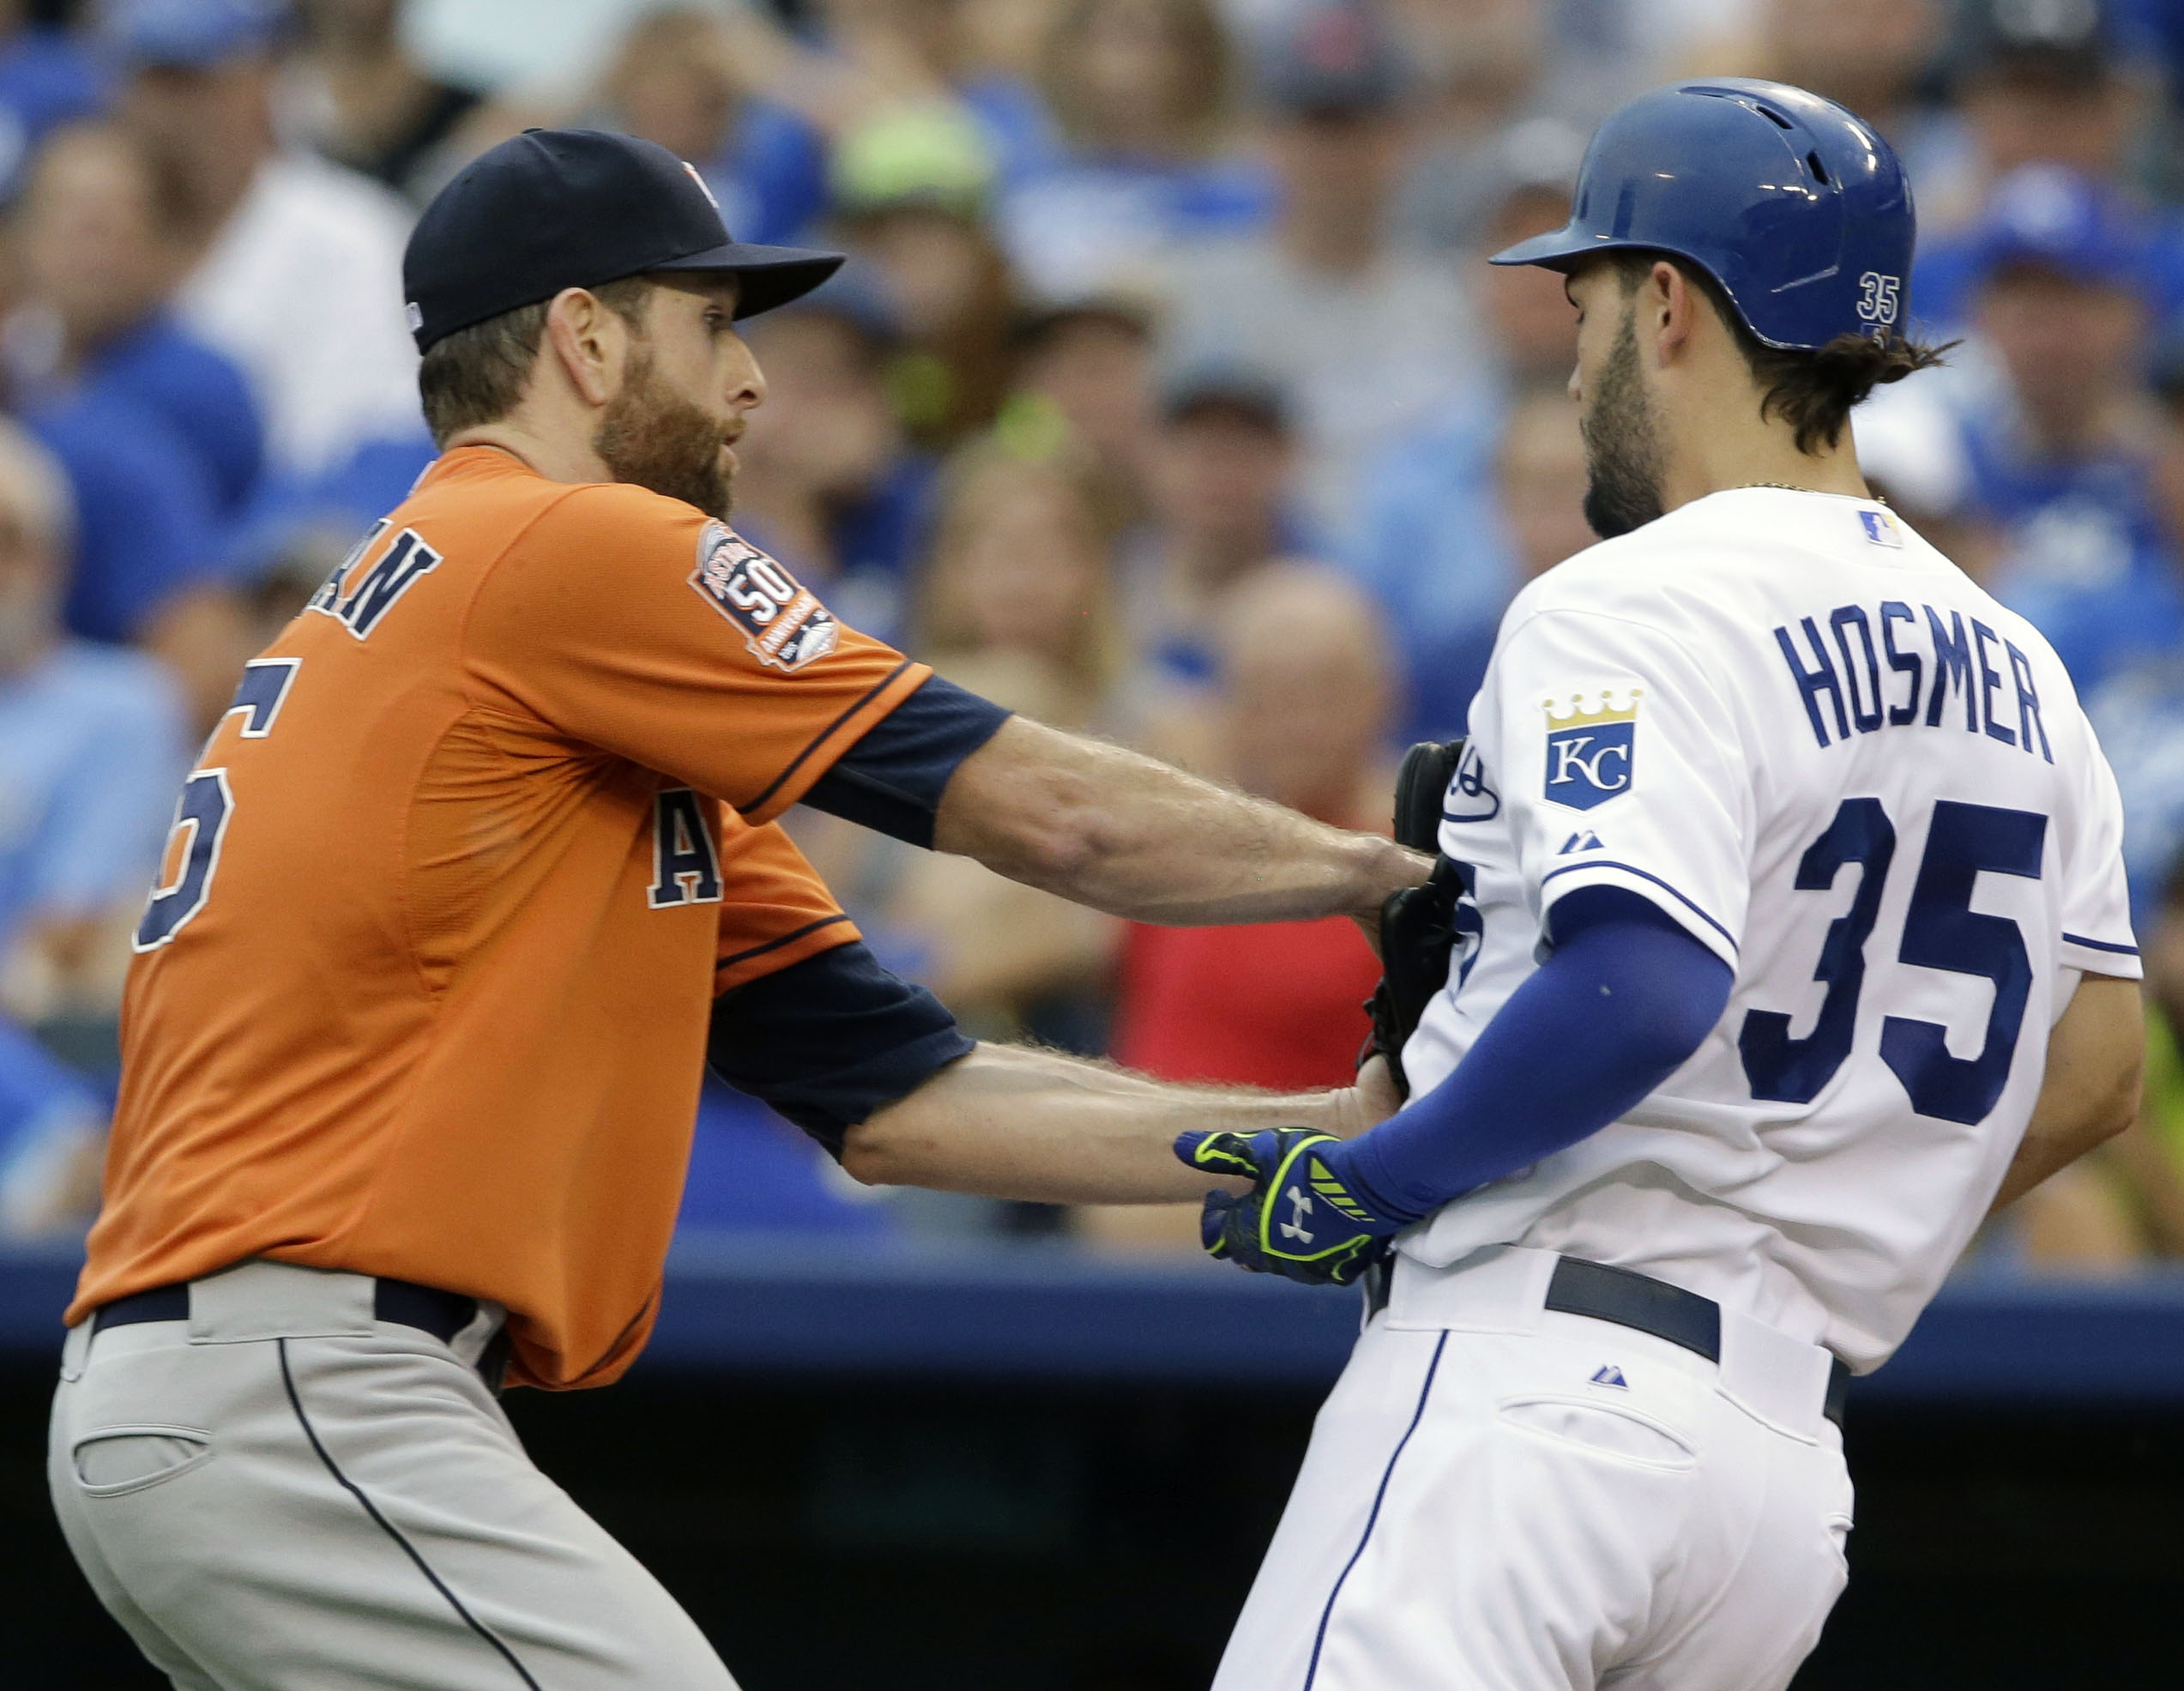 Houston Astros starting pitcher Scott Feldman, left, tags out Kansas City Royals' Eric Hosmer (35) during the fifth inning of a baseball game at Kauffman Stadium in Kansas City, Mo., Saturday, July 25, 2015. (AP Photo/Orlin Wagner)